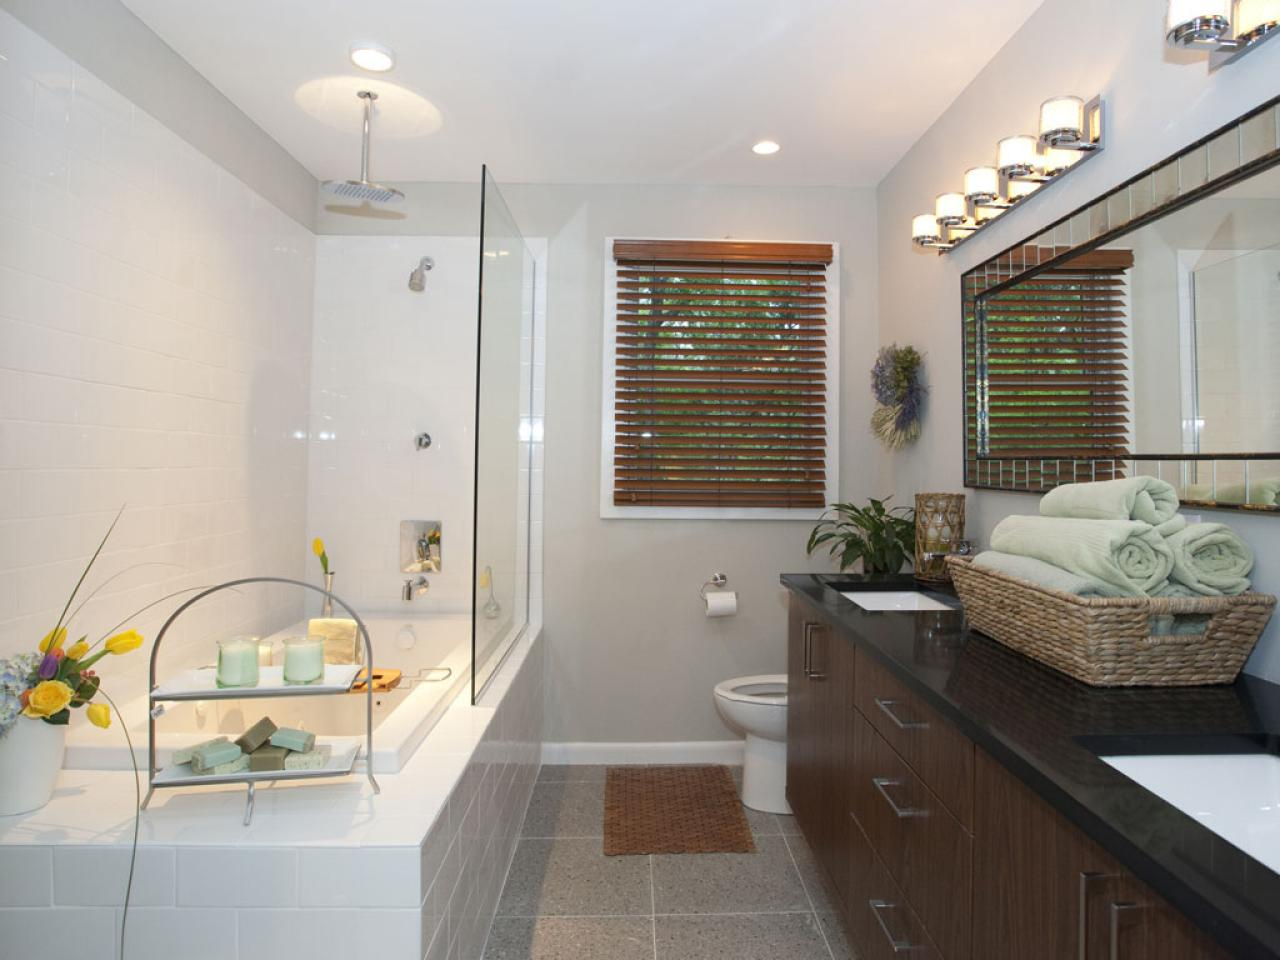 HPBRS409_bathroom-AFTER_0023_s4x3.jpg.rend.hgtvcom.1280.960